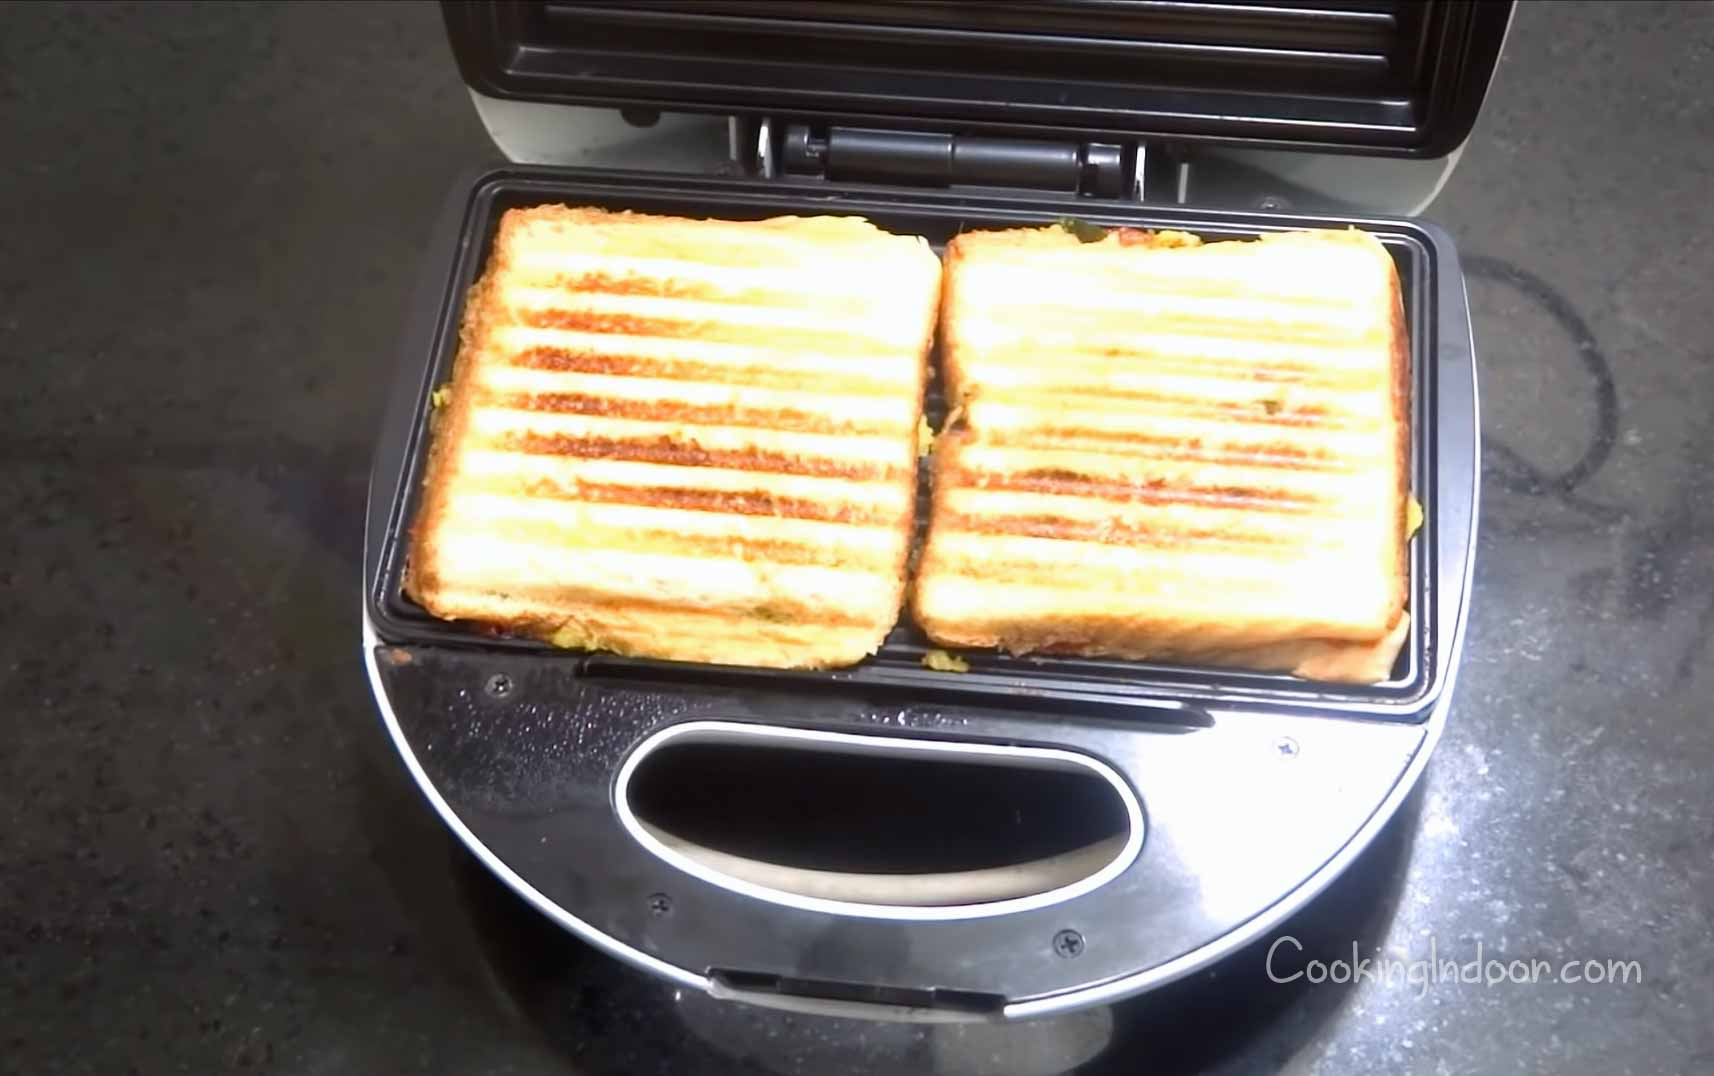 Best bread sandwich toaster